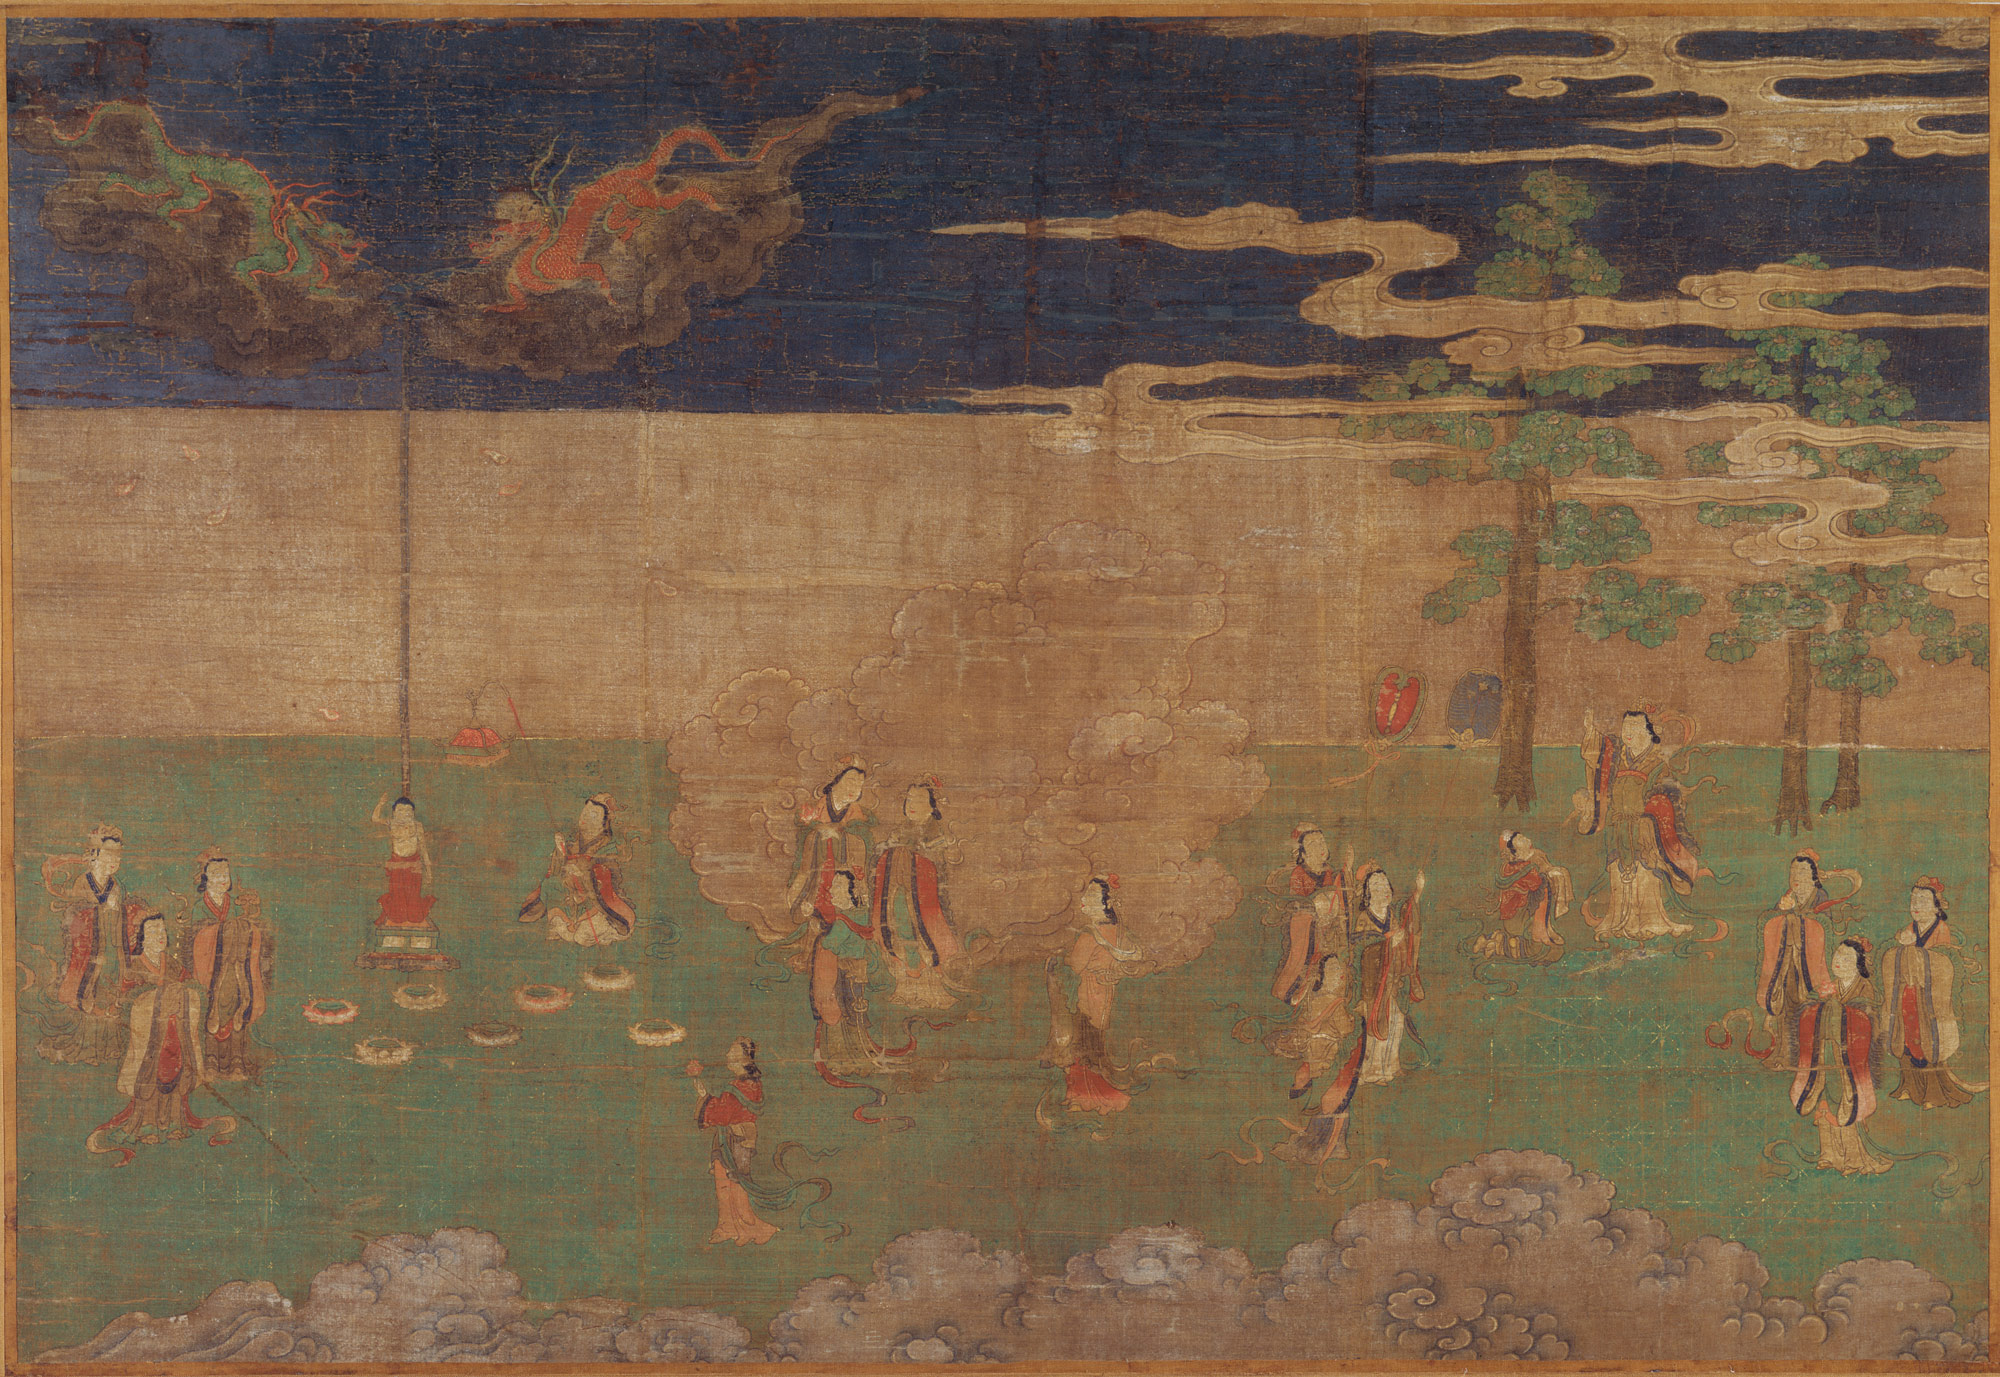 The Birth of the Buddha